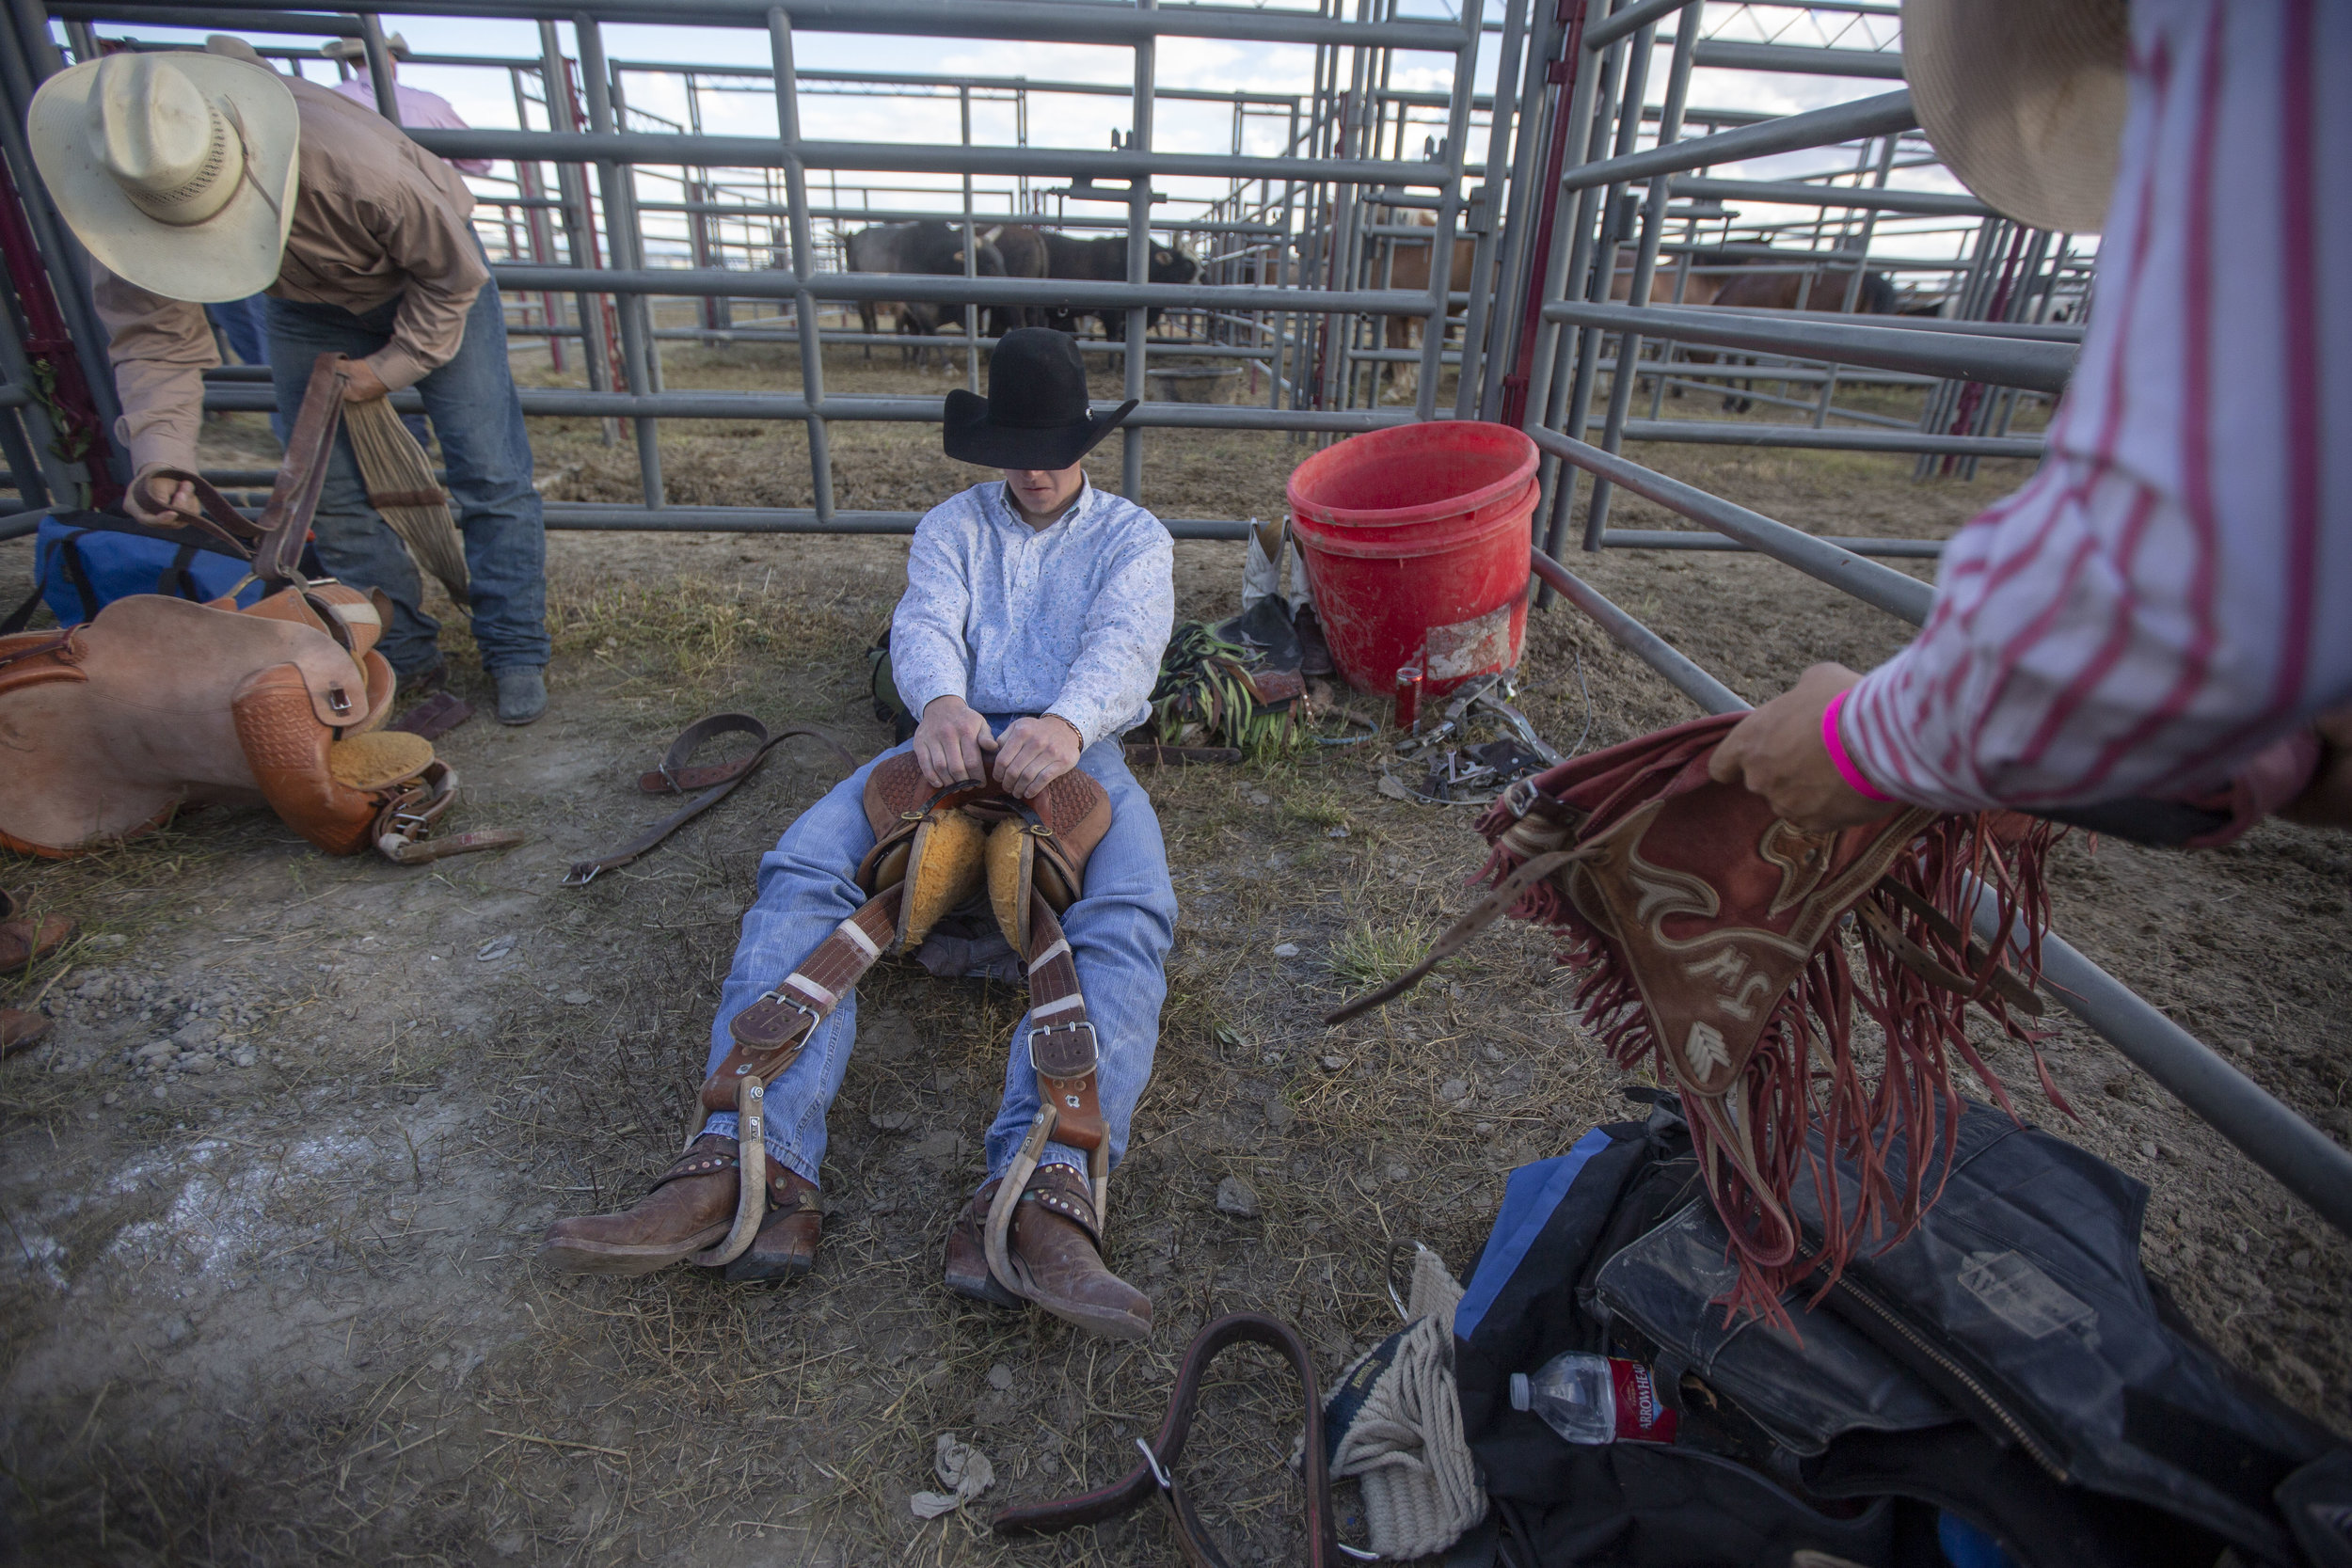 Saddle Bronc riders get ready for their event.